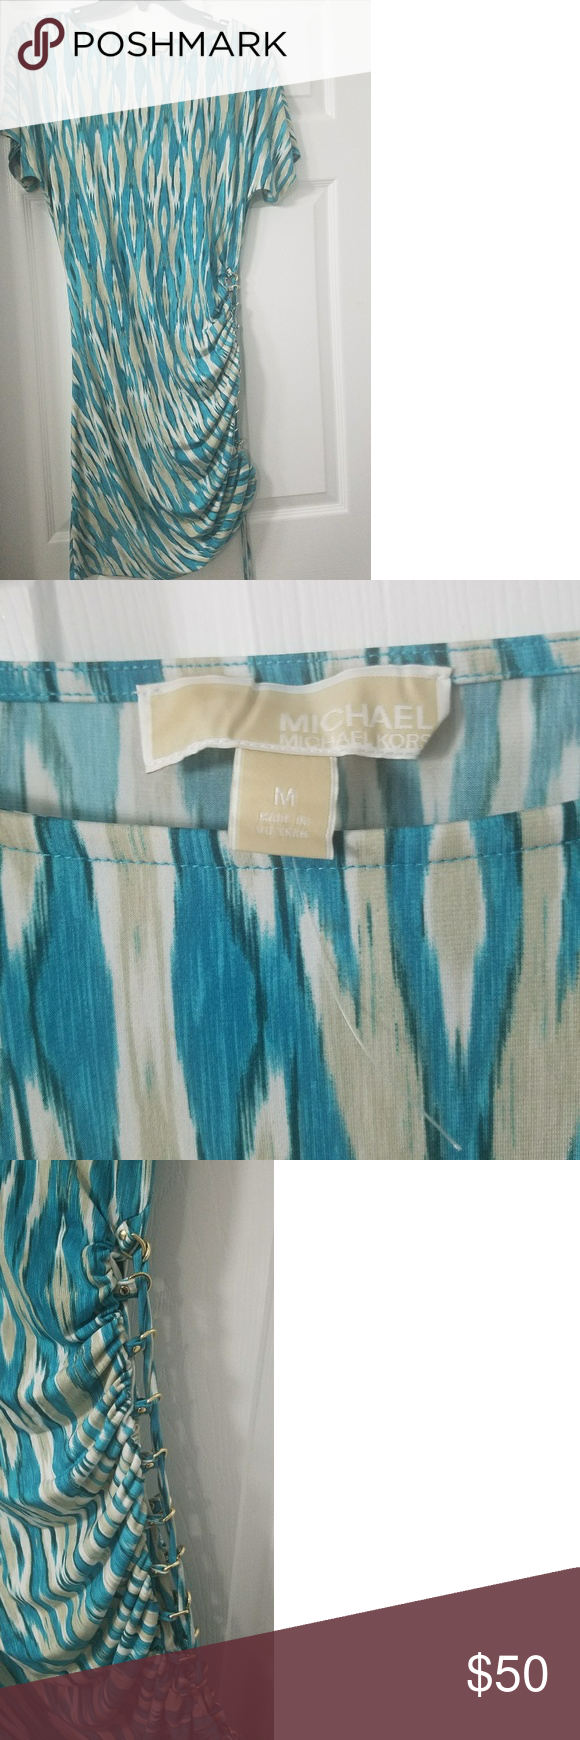 NWOT Michael Kors Teal/Cream Ruched Dress Never worn. Really great for the summer time!  The side of the dress is adjustable so you can pull it tight to shorten it and create more of a waist cinch or you can loosen it to have less of a cinch and a longer dress. Michael Kors Dresses Midi